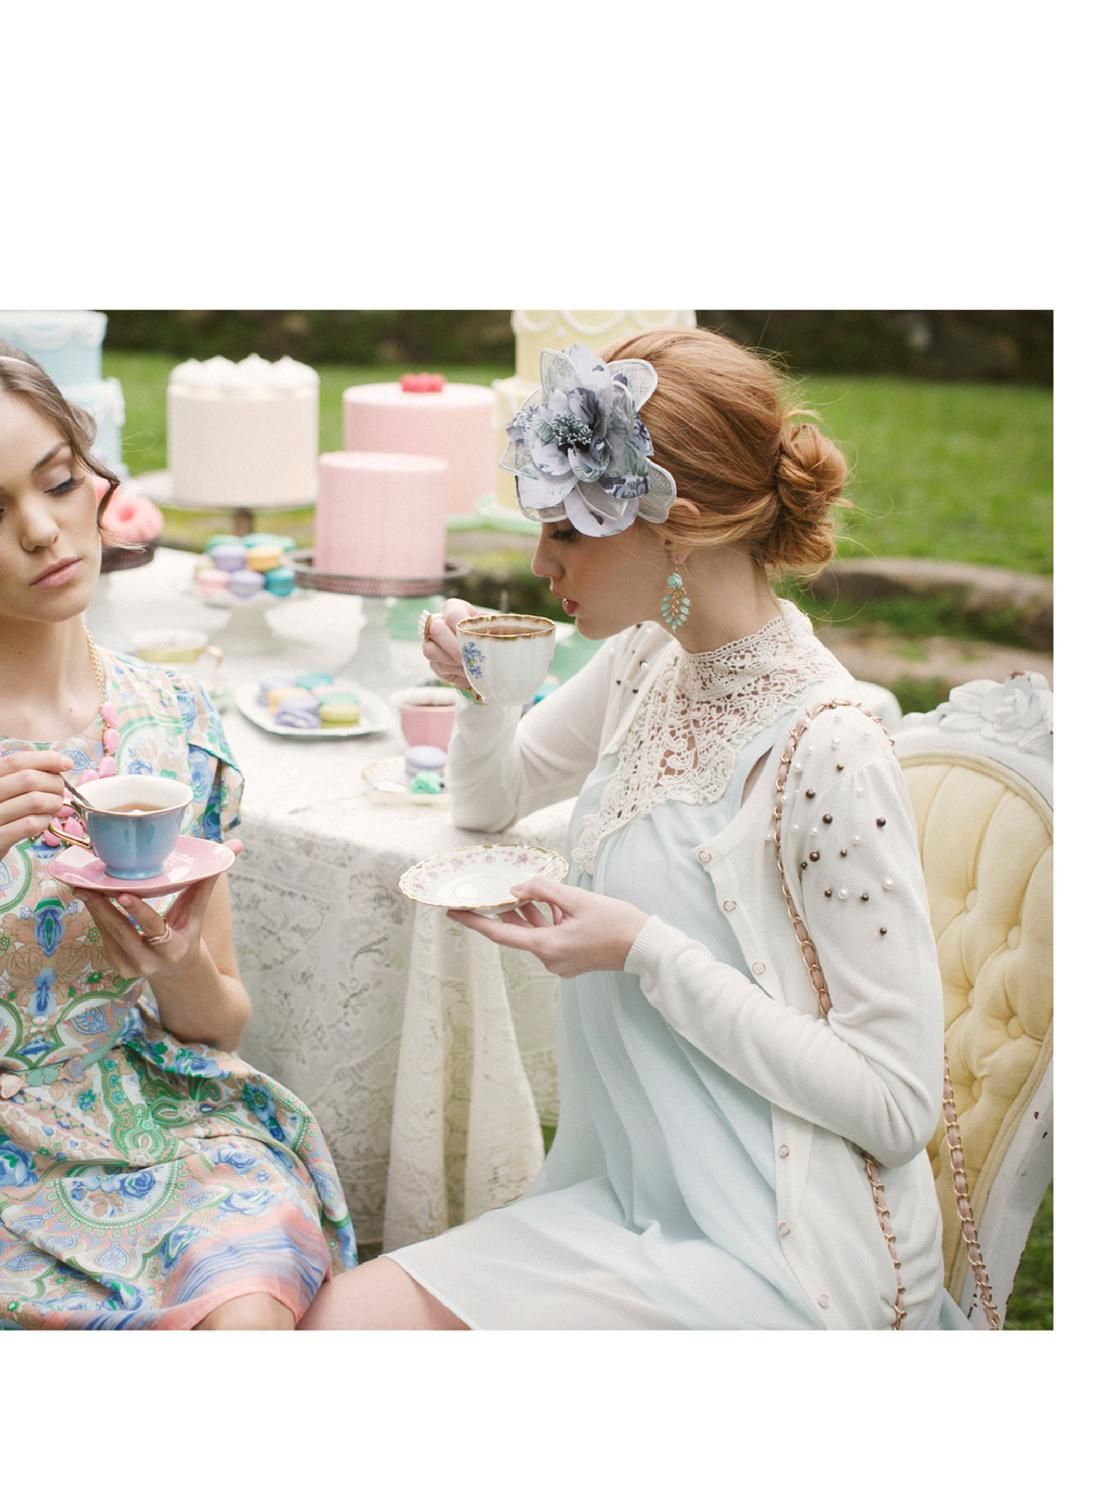 Tea For Two Ruche Spring Lookbook Tea Party Attire Tea Party Outfits Spring Tea Party [ 1498 x 1101 Pixel ]